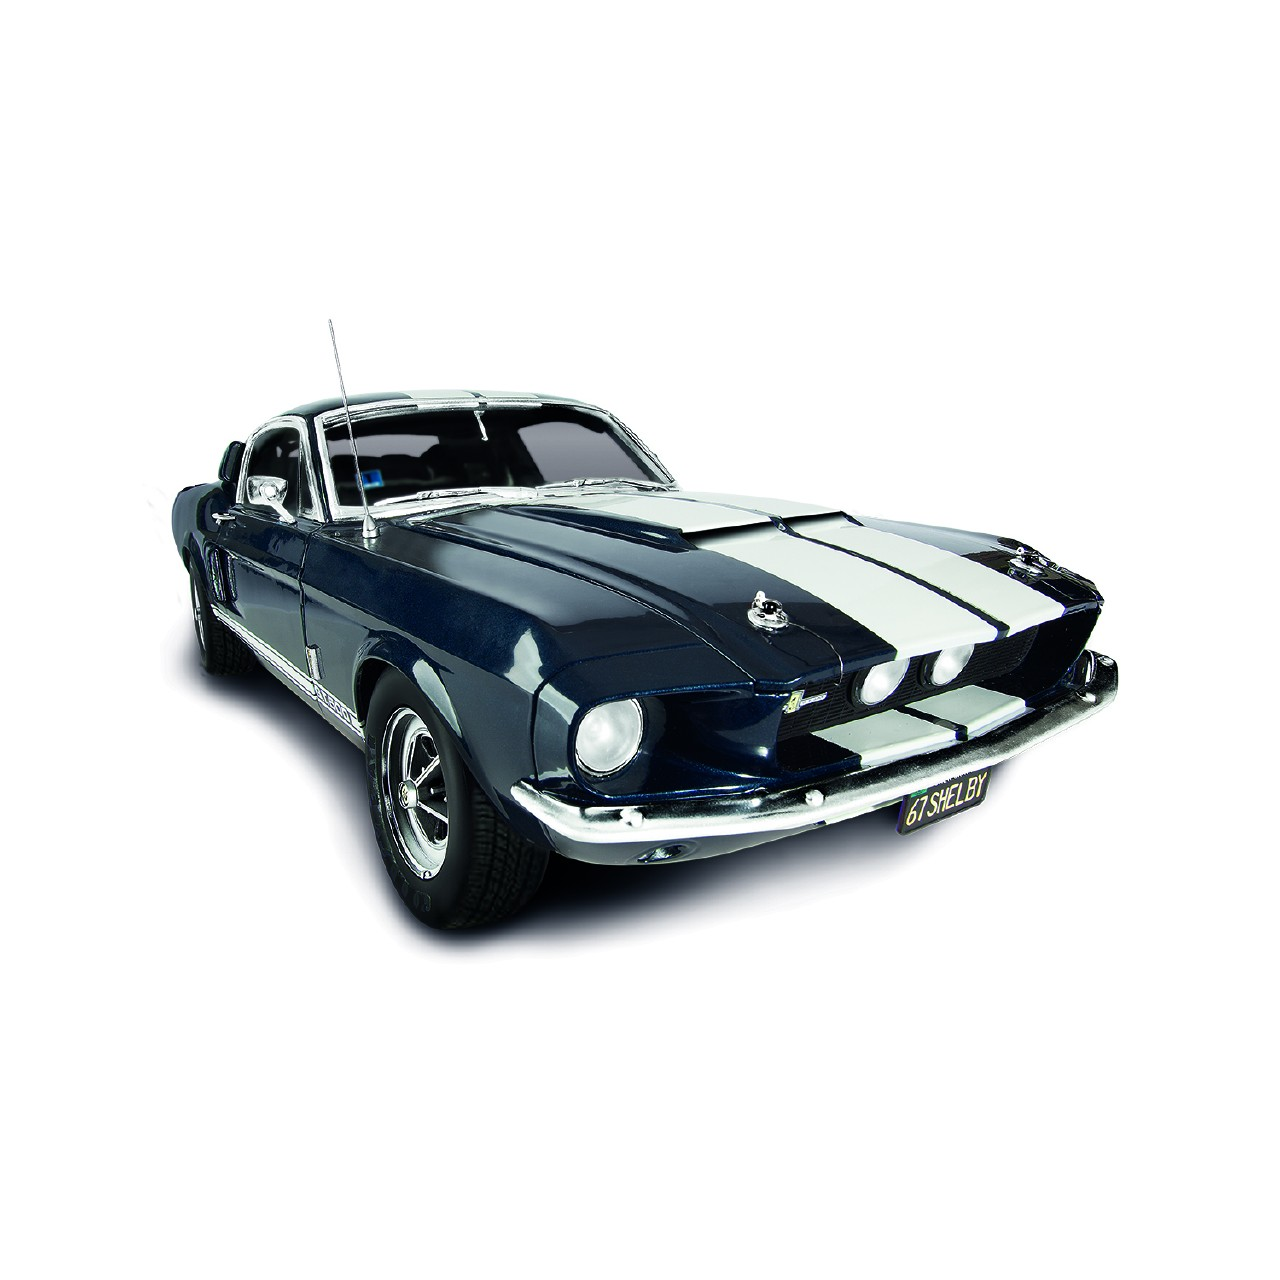 Ford Shelby Mustang modello